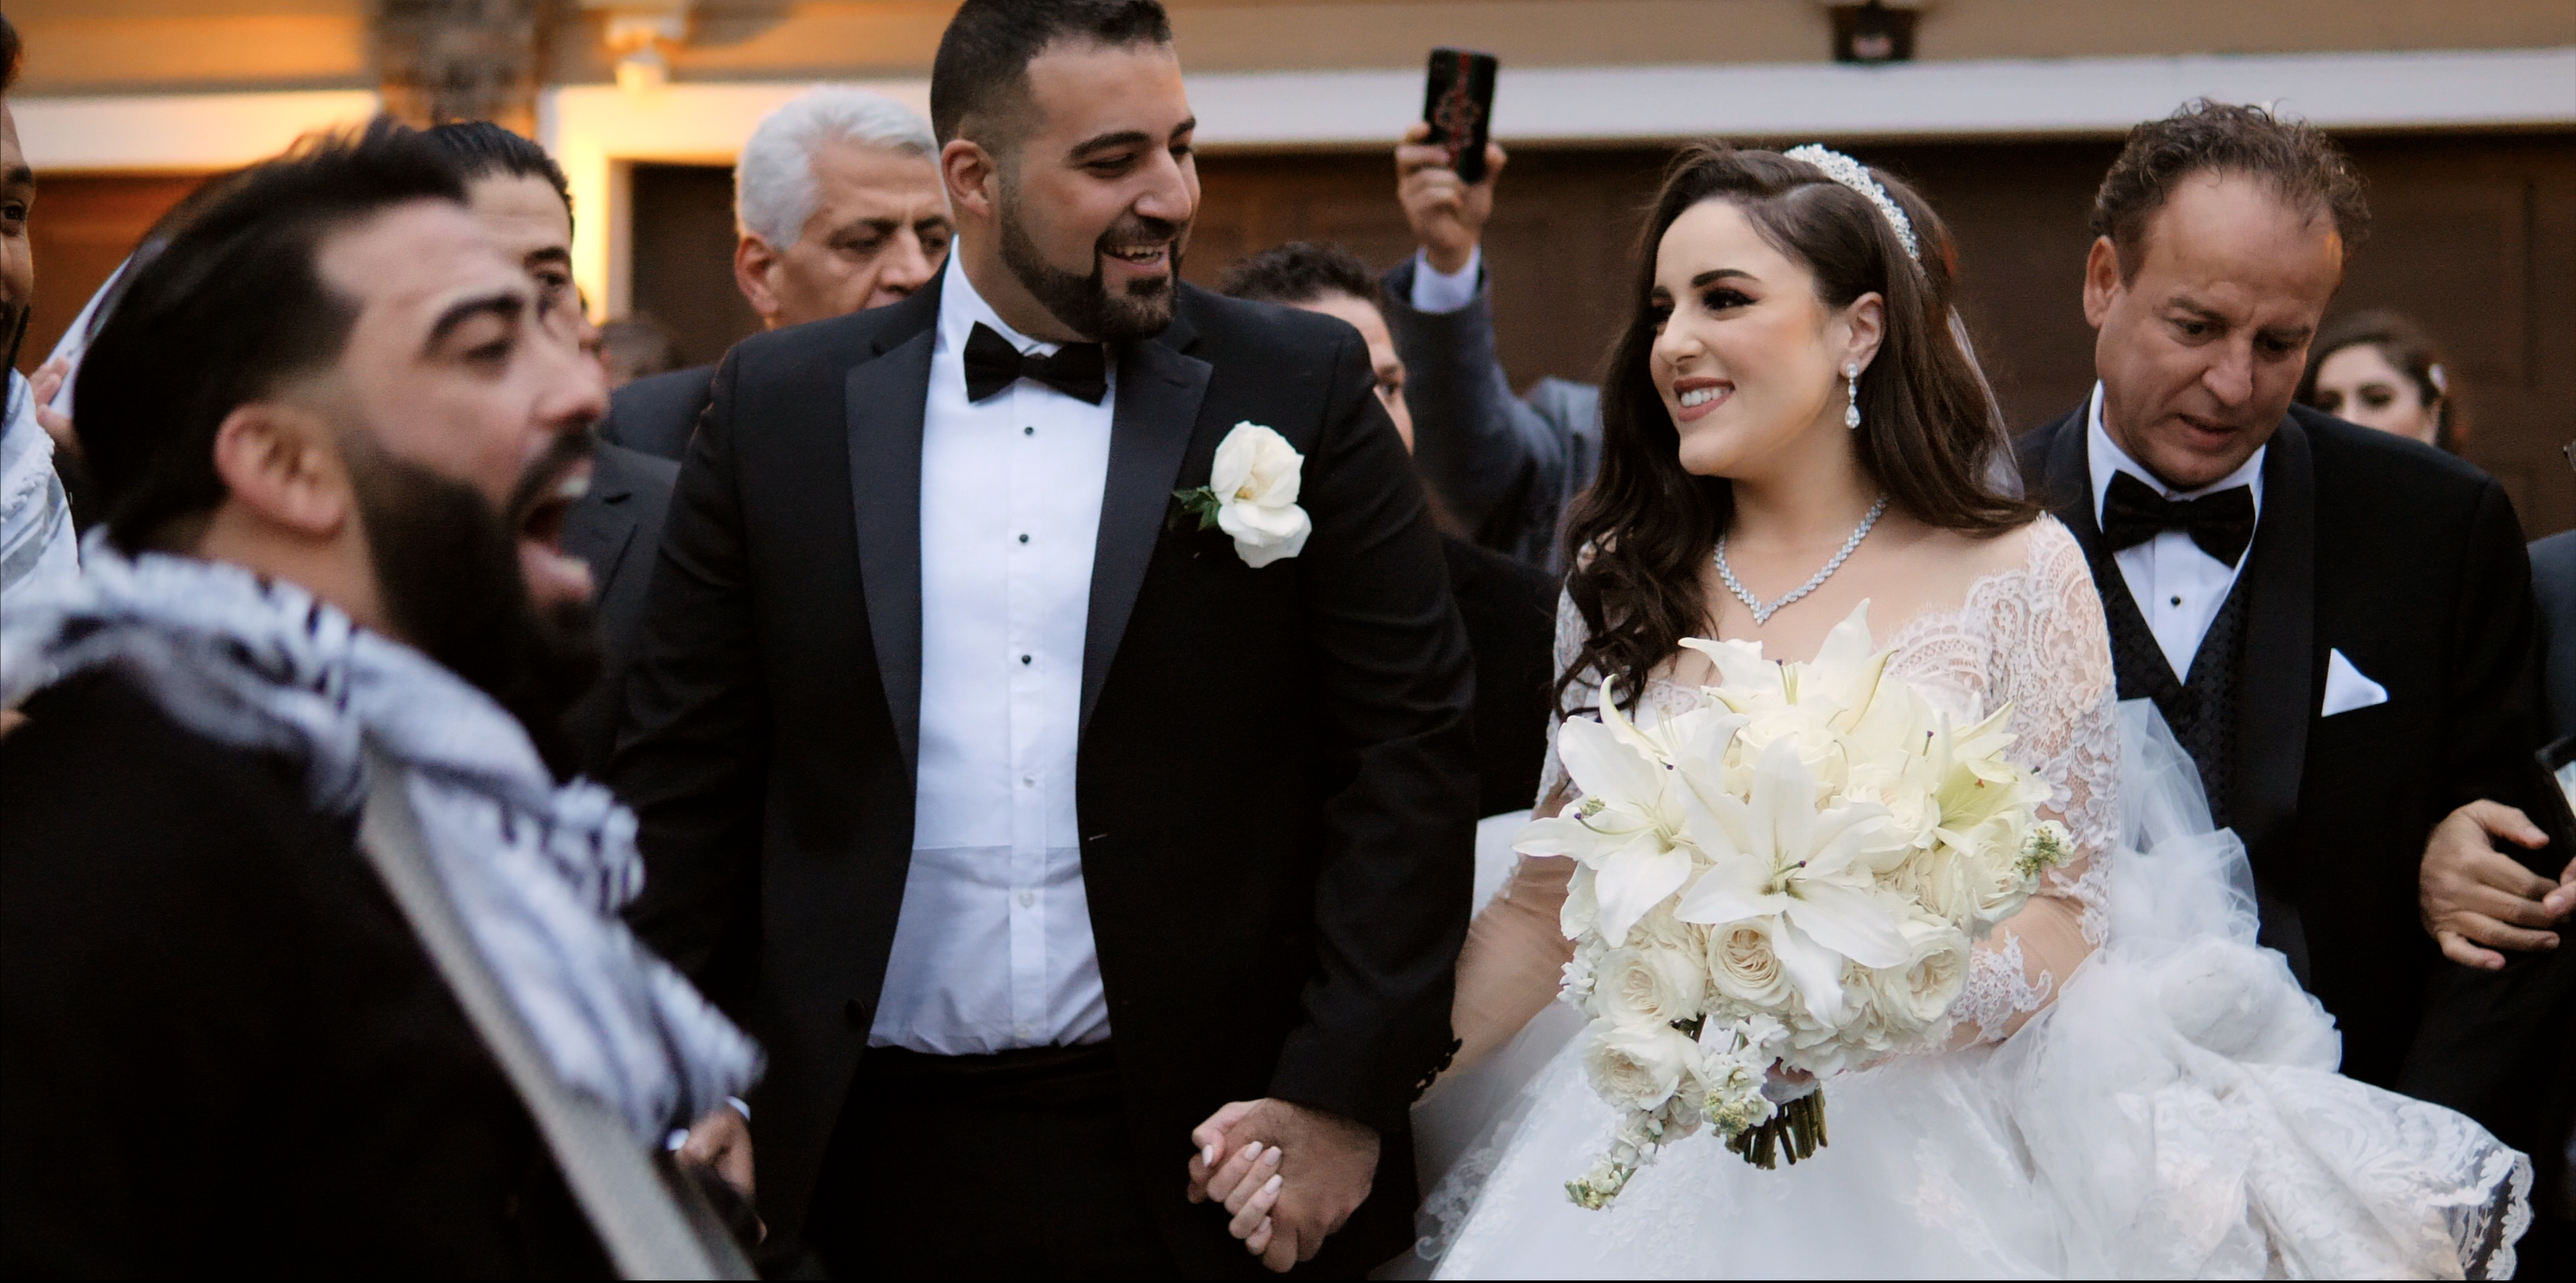 Rula + Sameh | Saint Paul, Minnesota | Intercontinental Hotel Saint Paul